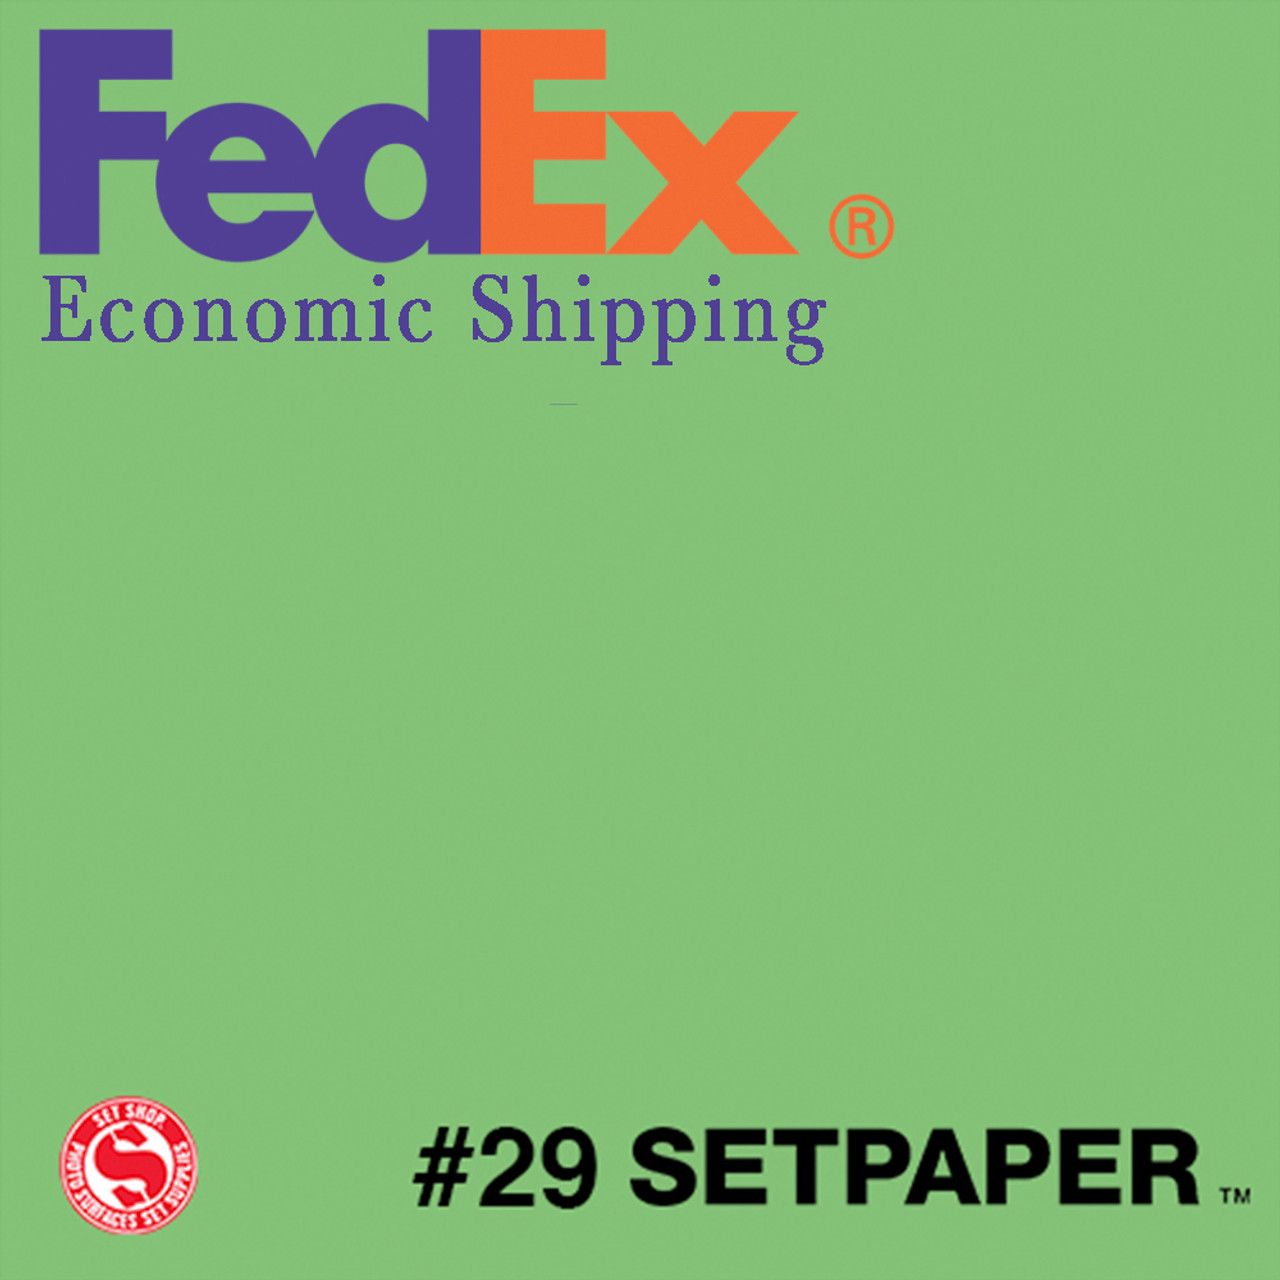 "(ECONOMIC SHIPPING) SETPAPER - APPLE GREEN 48"" x 36' (1.3 x 11m)"